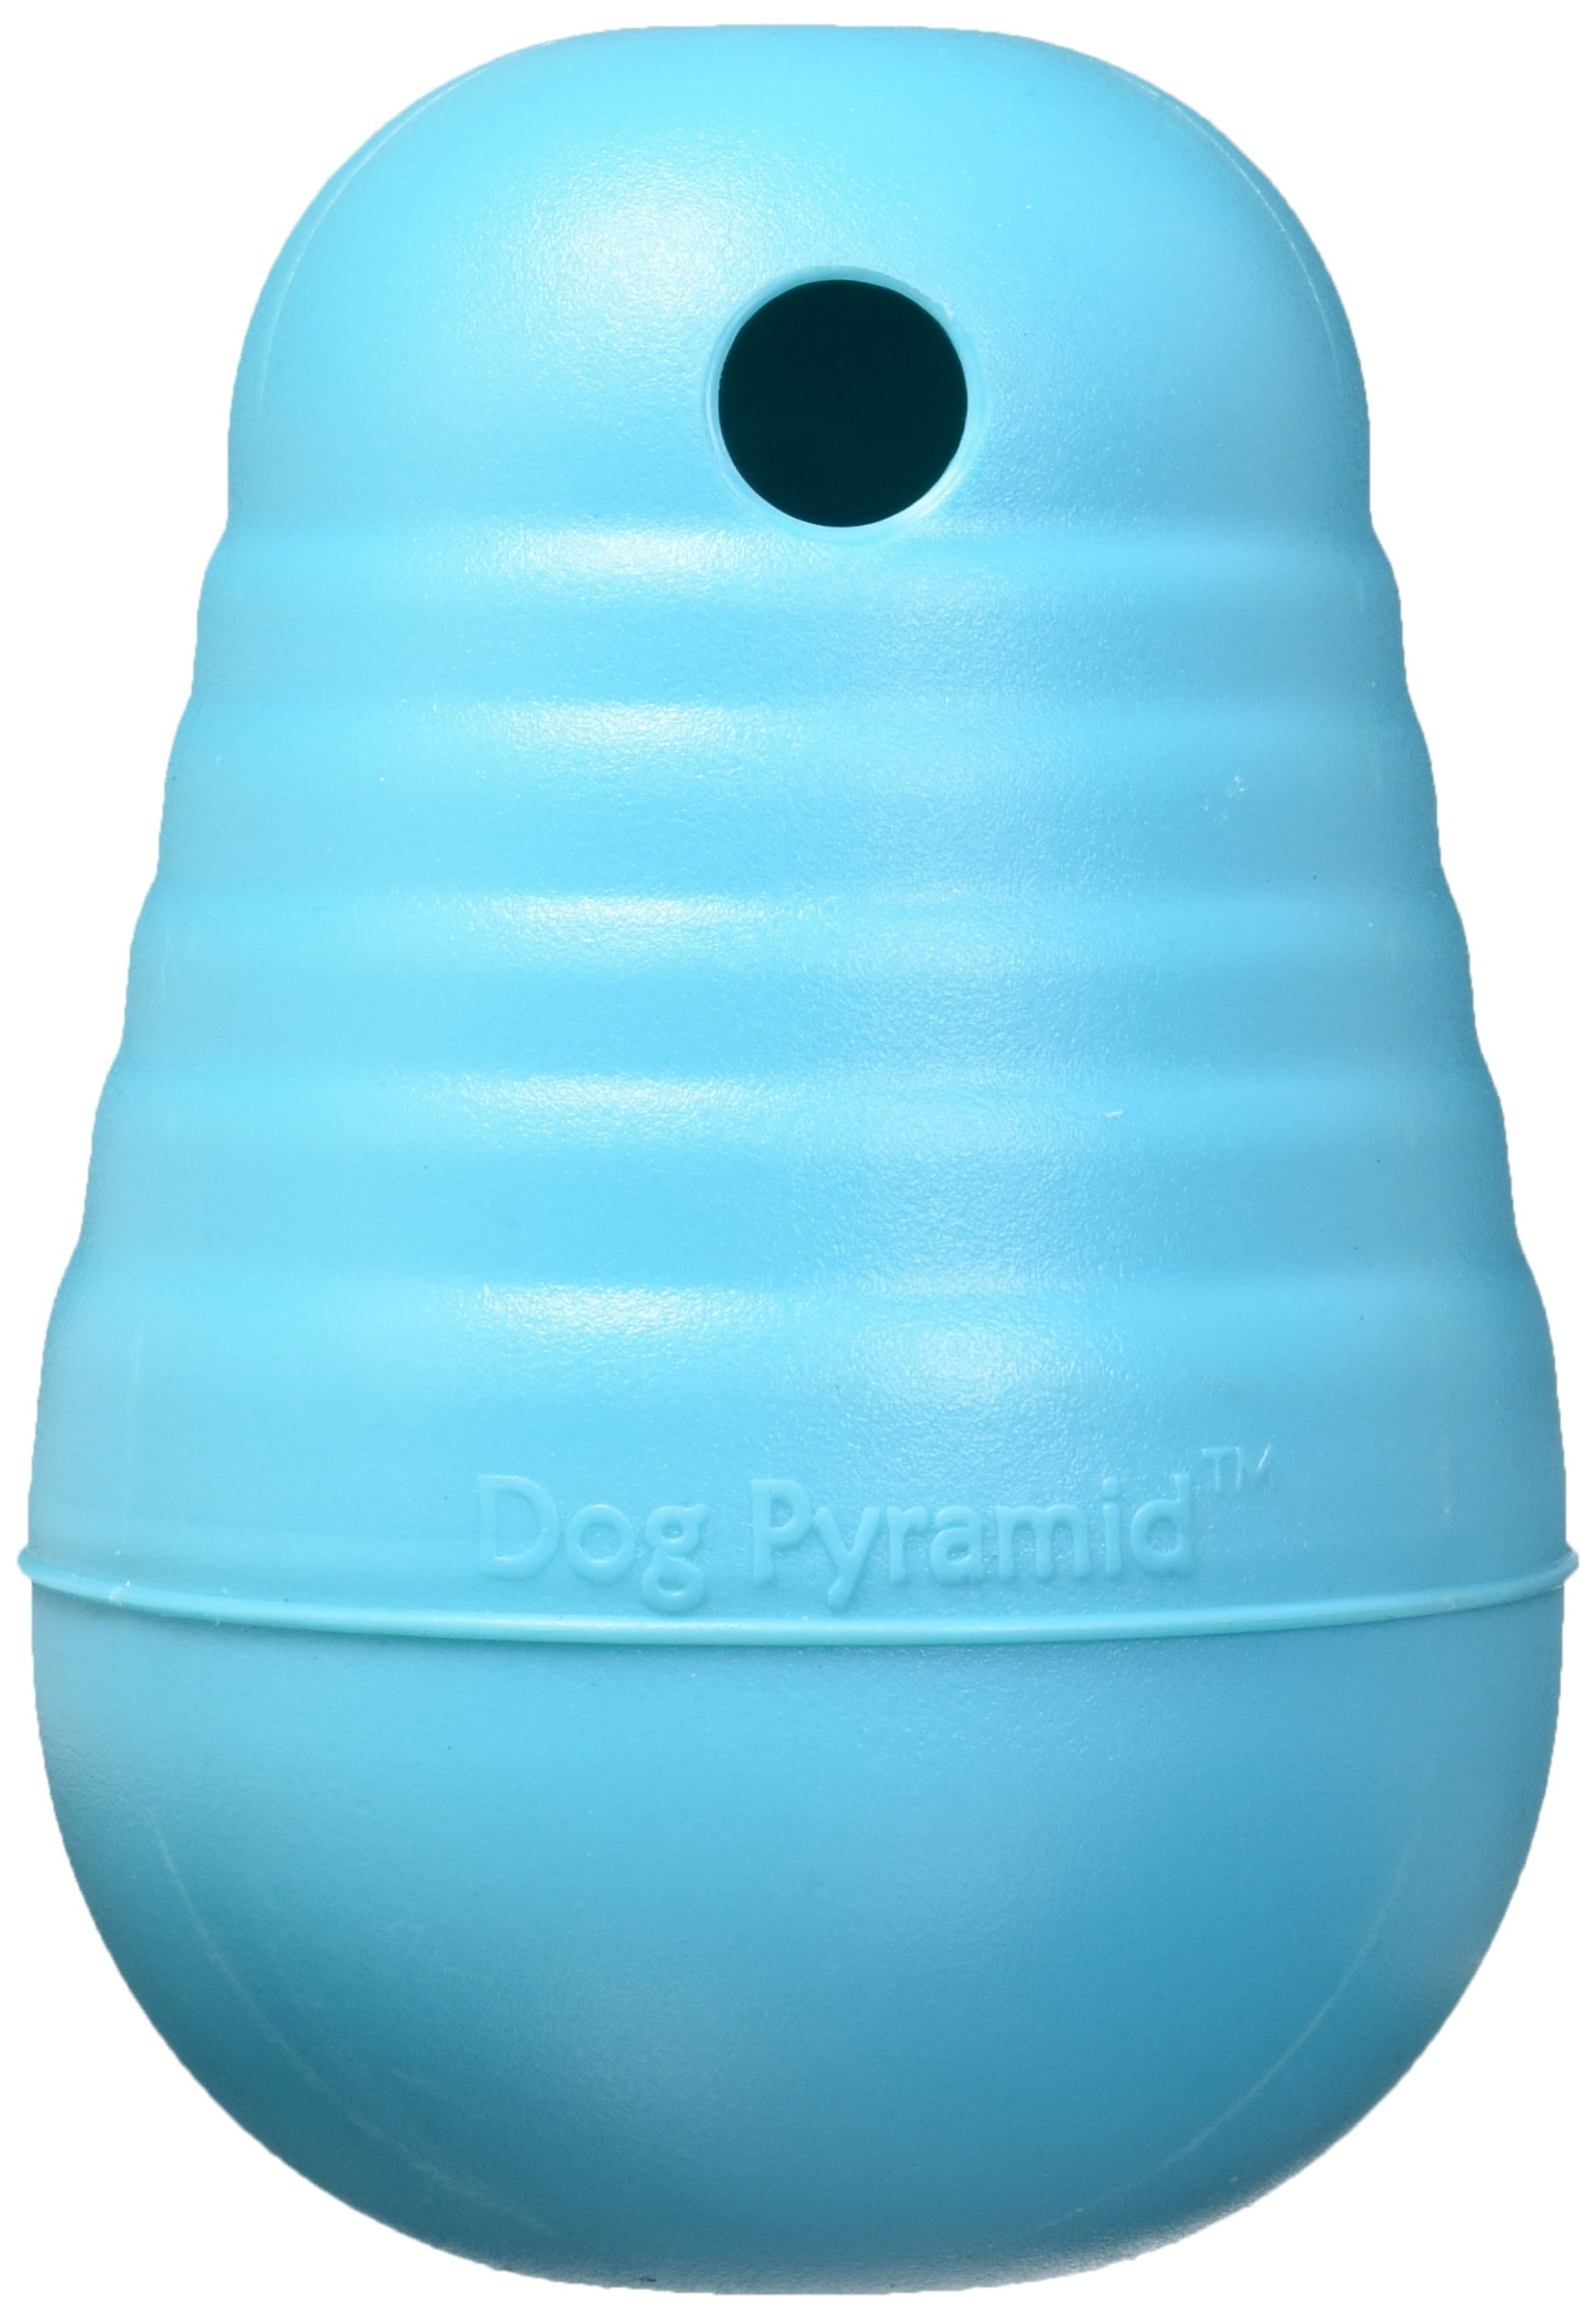 Nina Ottosson Dog Pyramid Interactive Doy Toy Puzzle for Dogs, Turquoise, Large